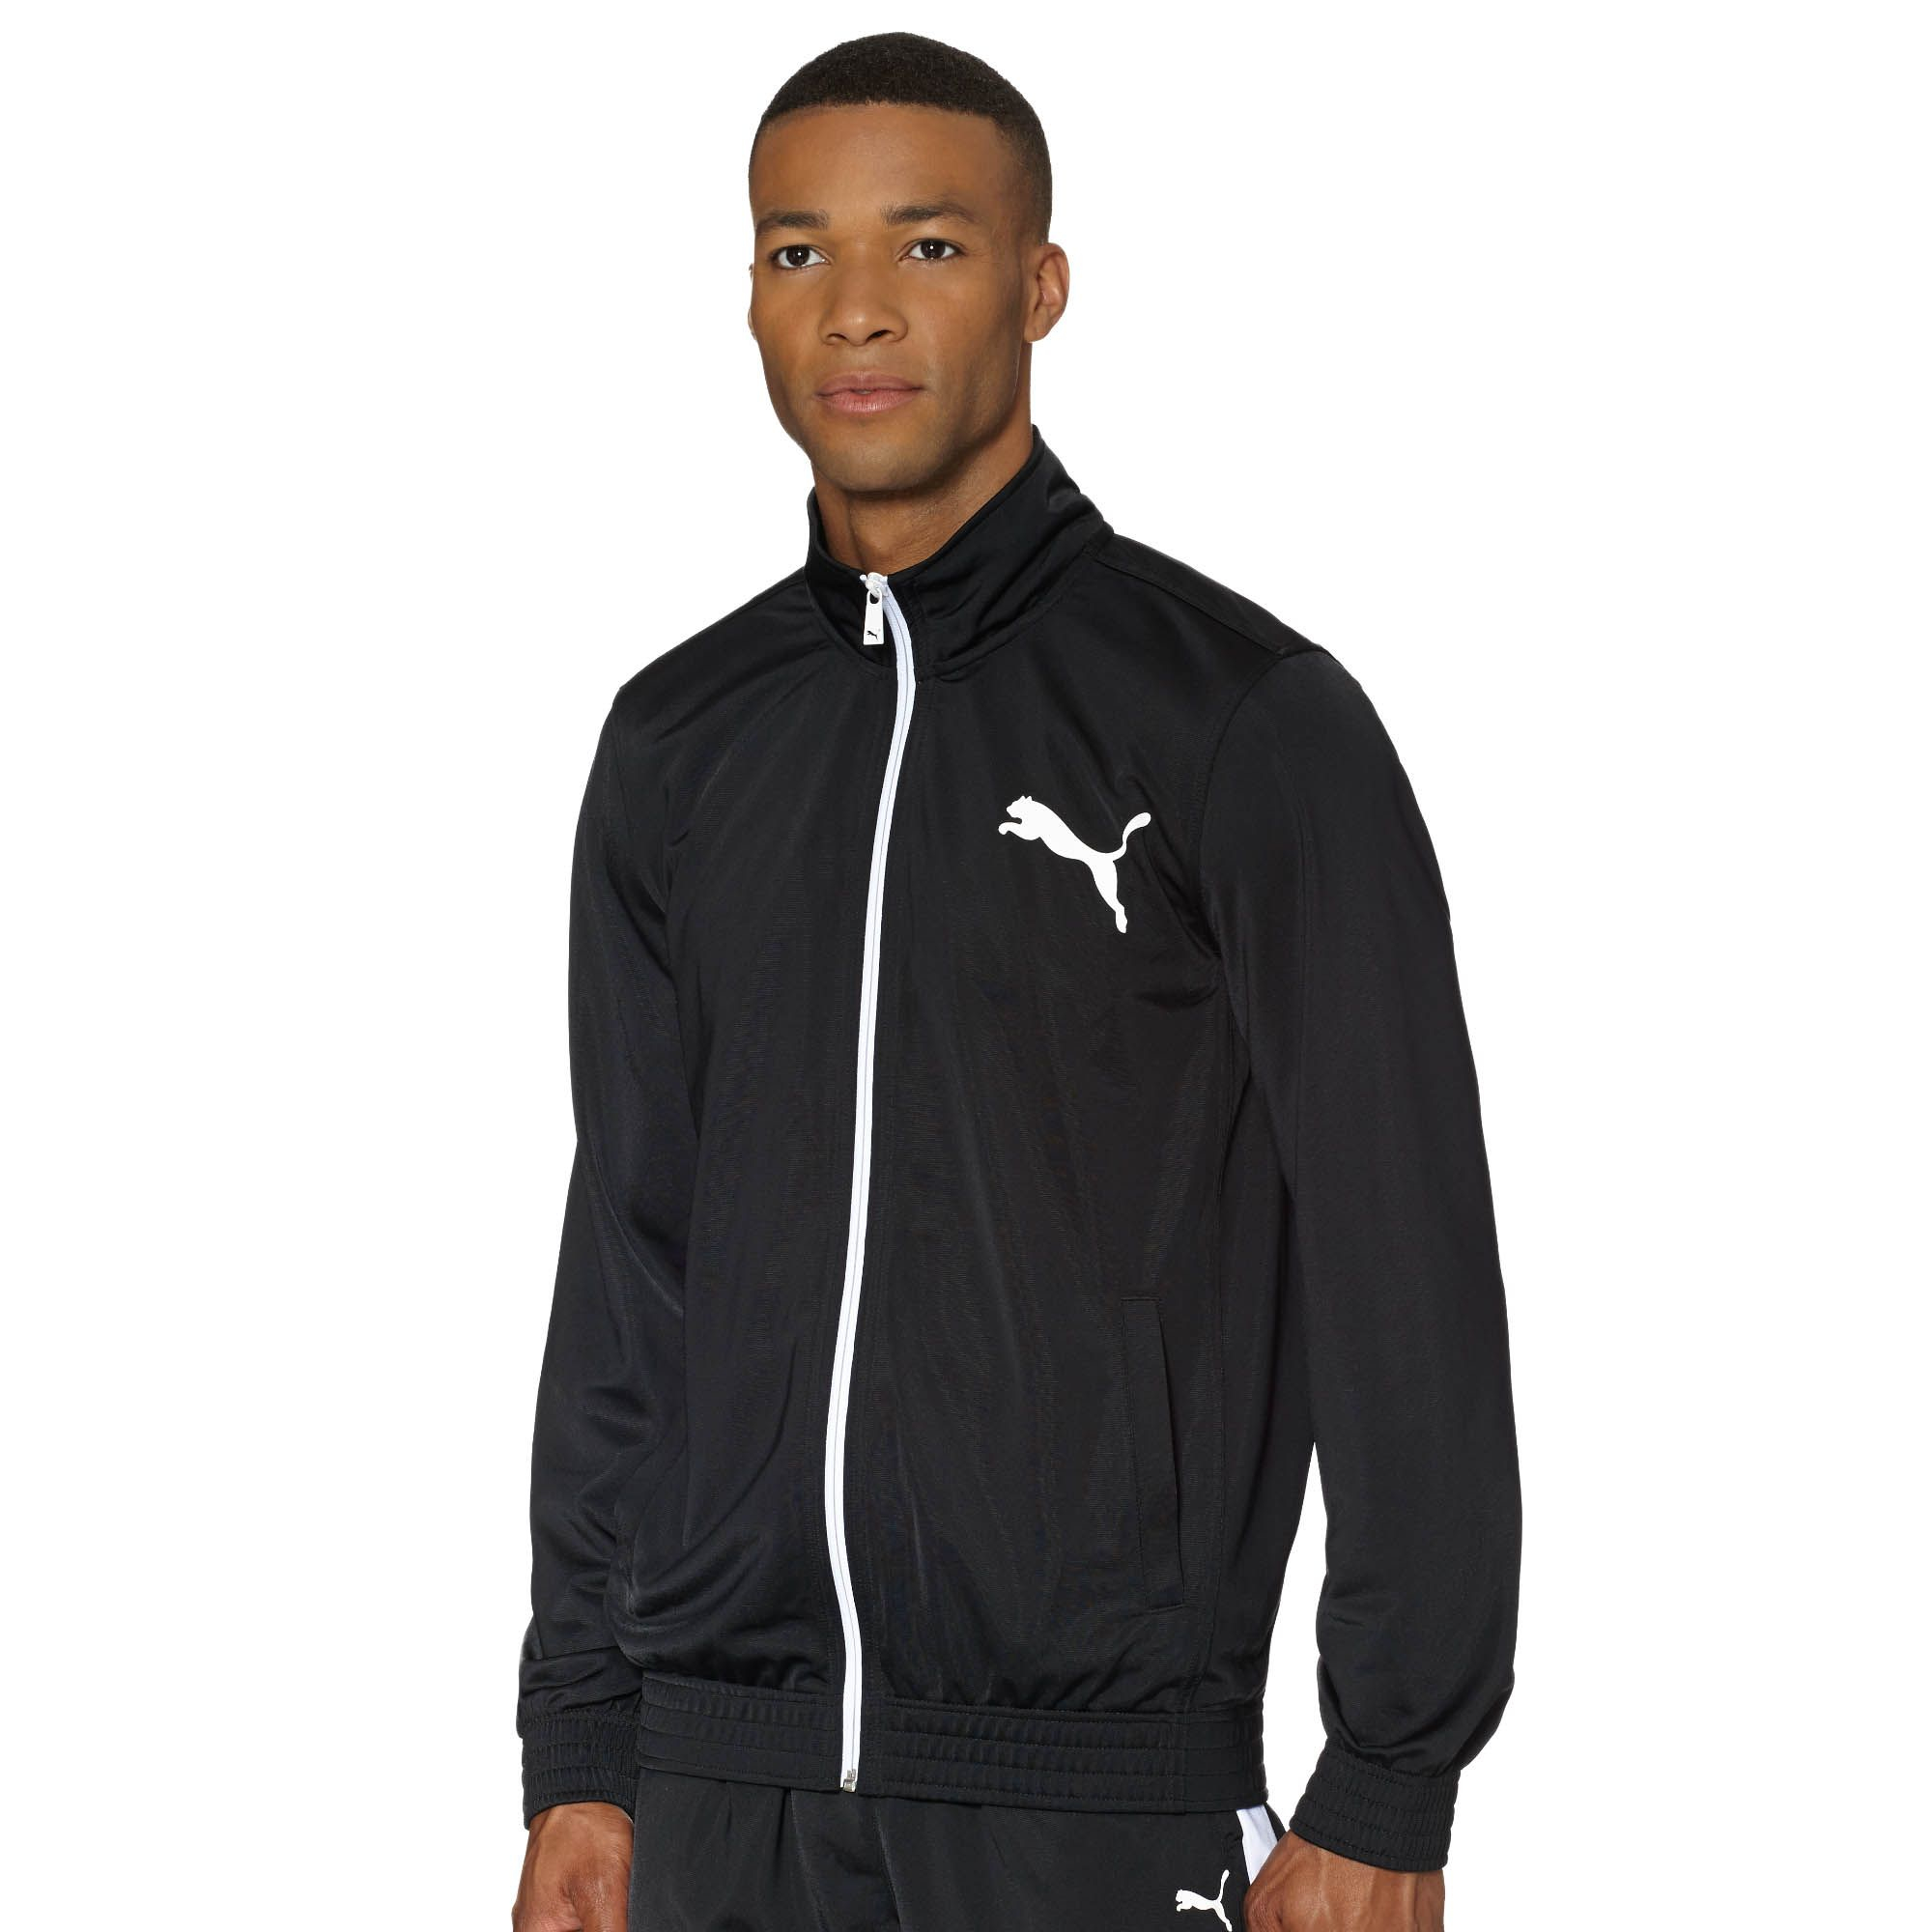 21a36a70ad7f Puma Zip-up Track Jacket in Black for Men